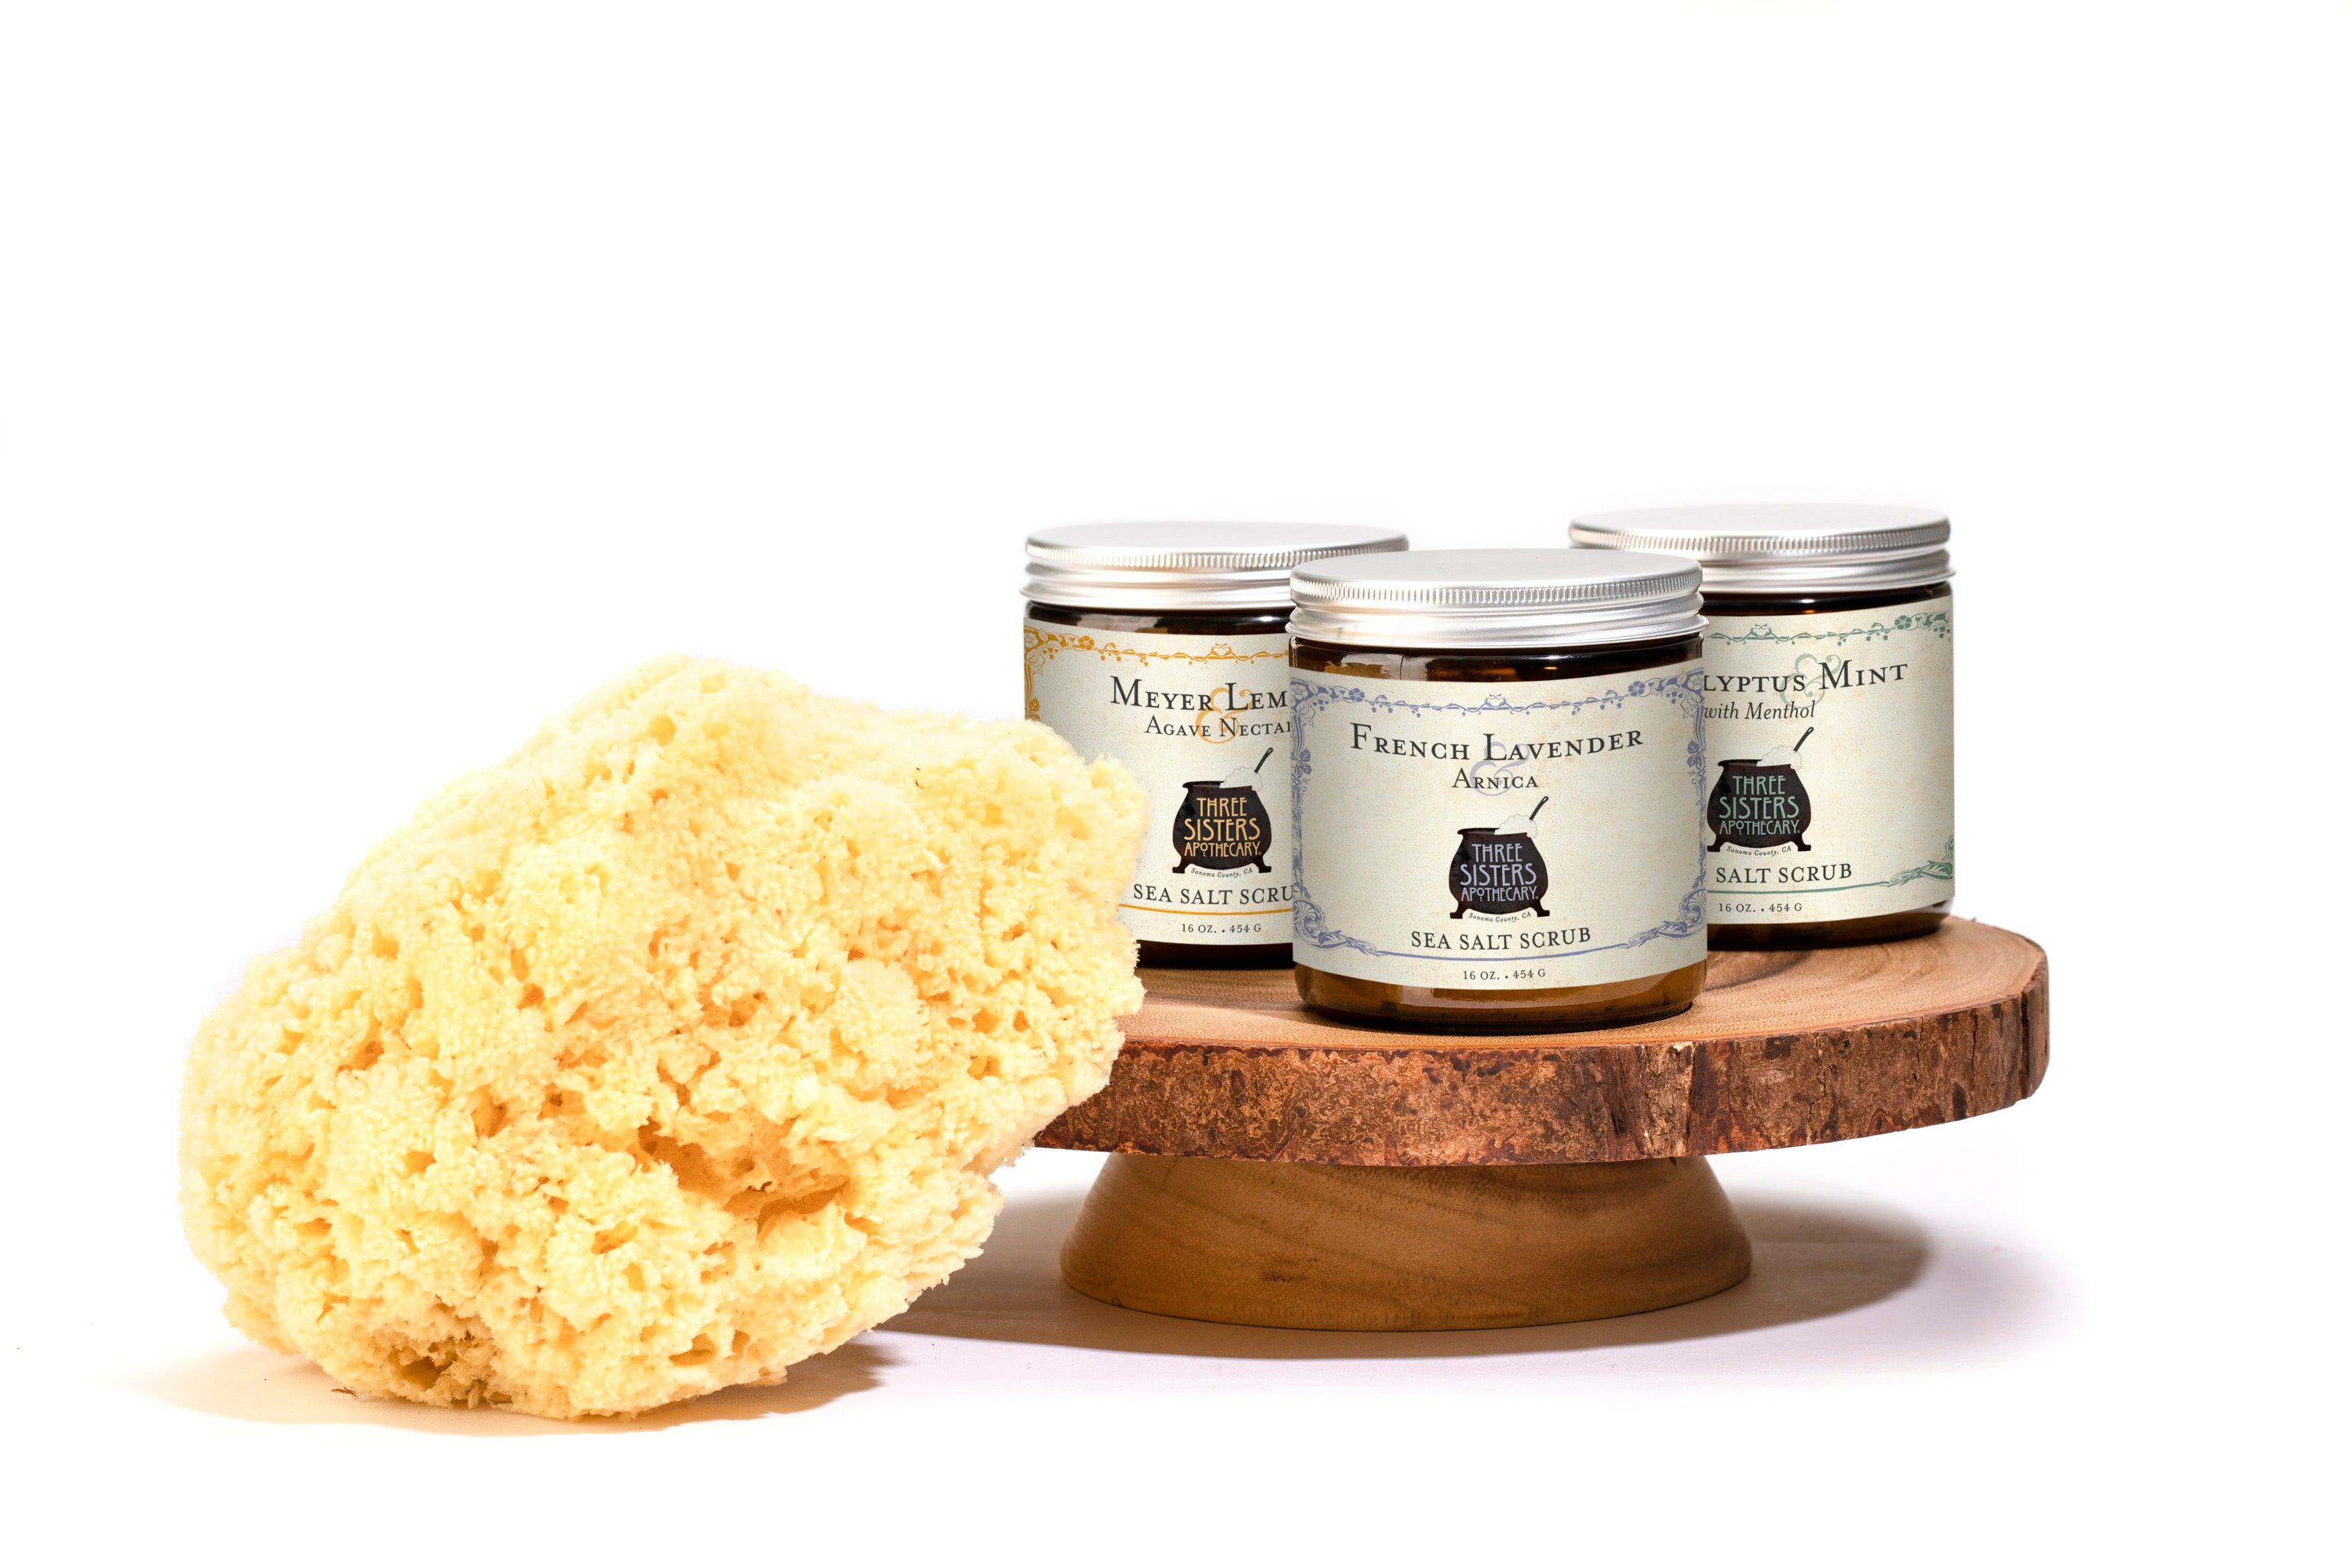 Meyer Lemon Sea Salt Scrub  - 16 oz.